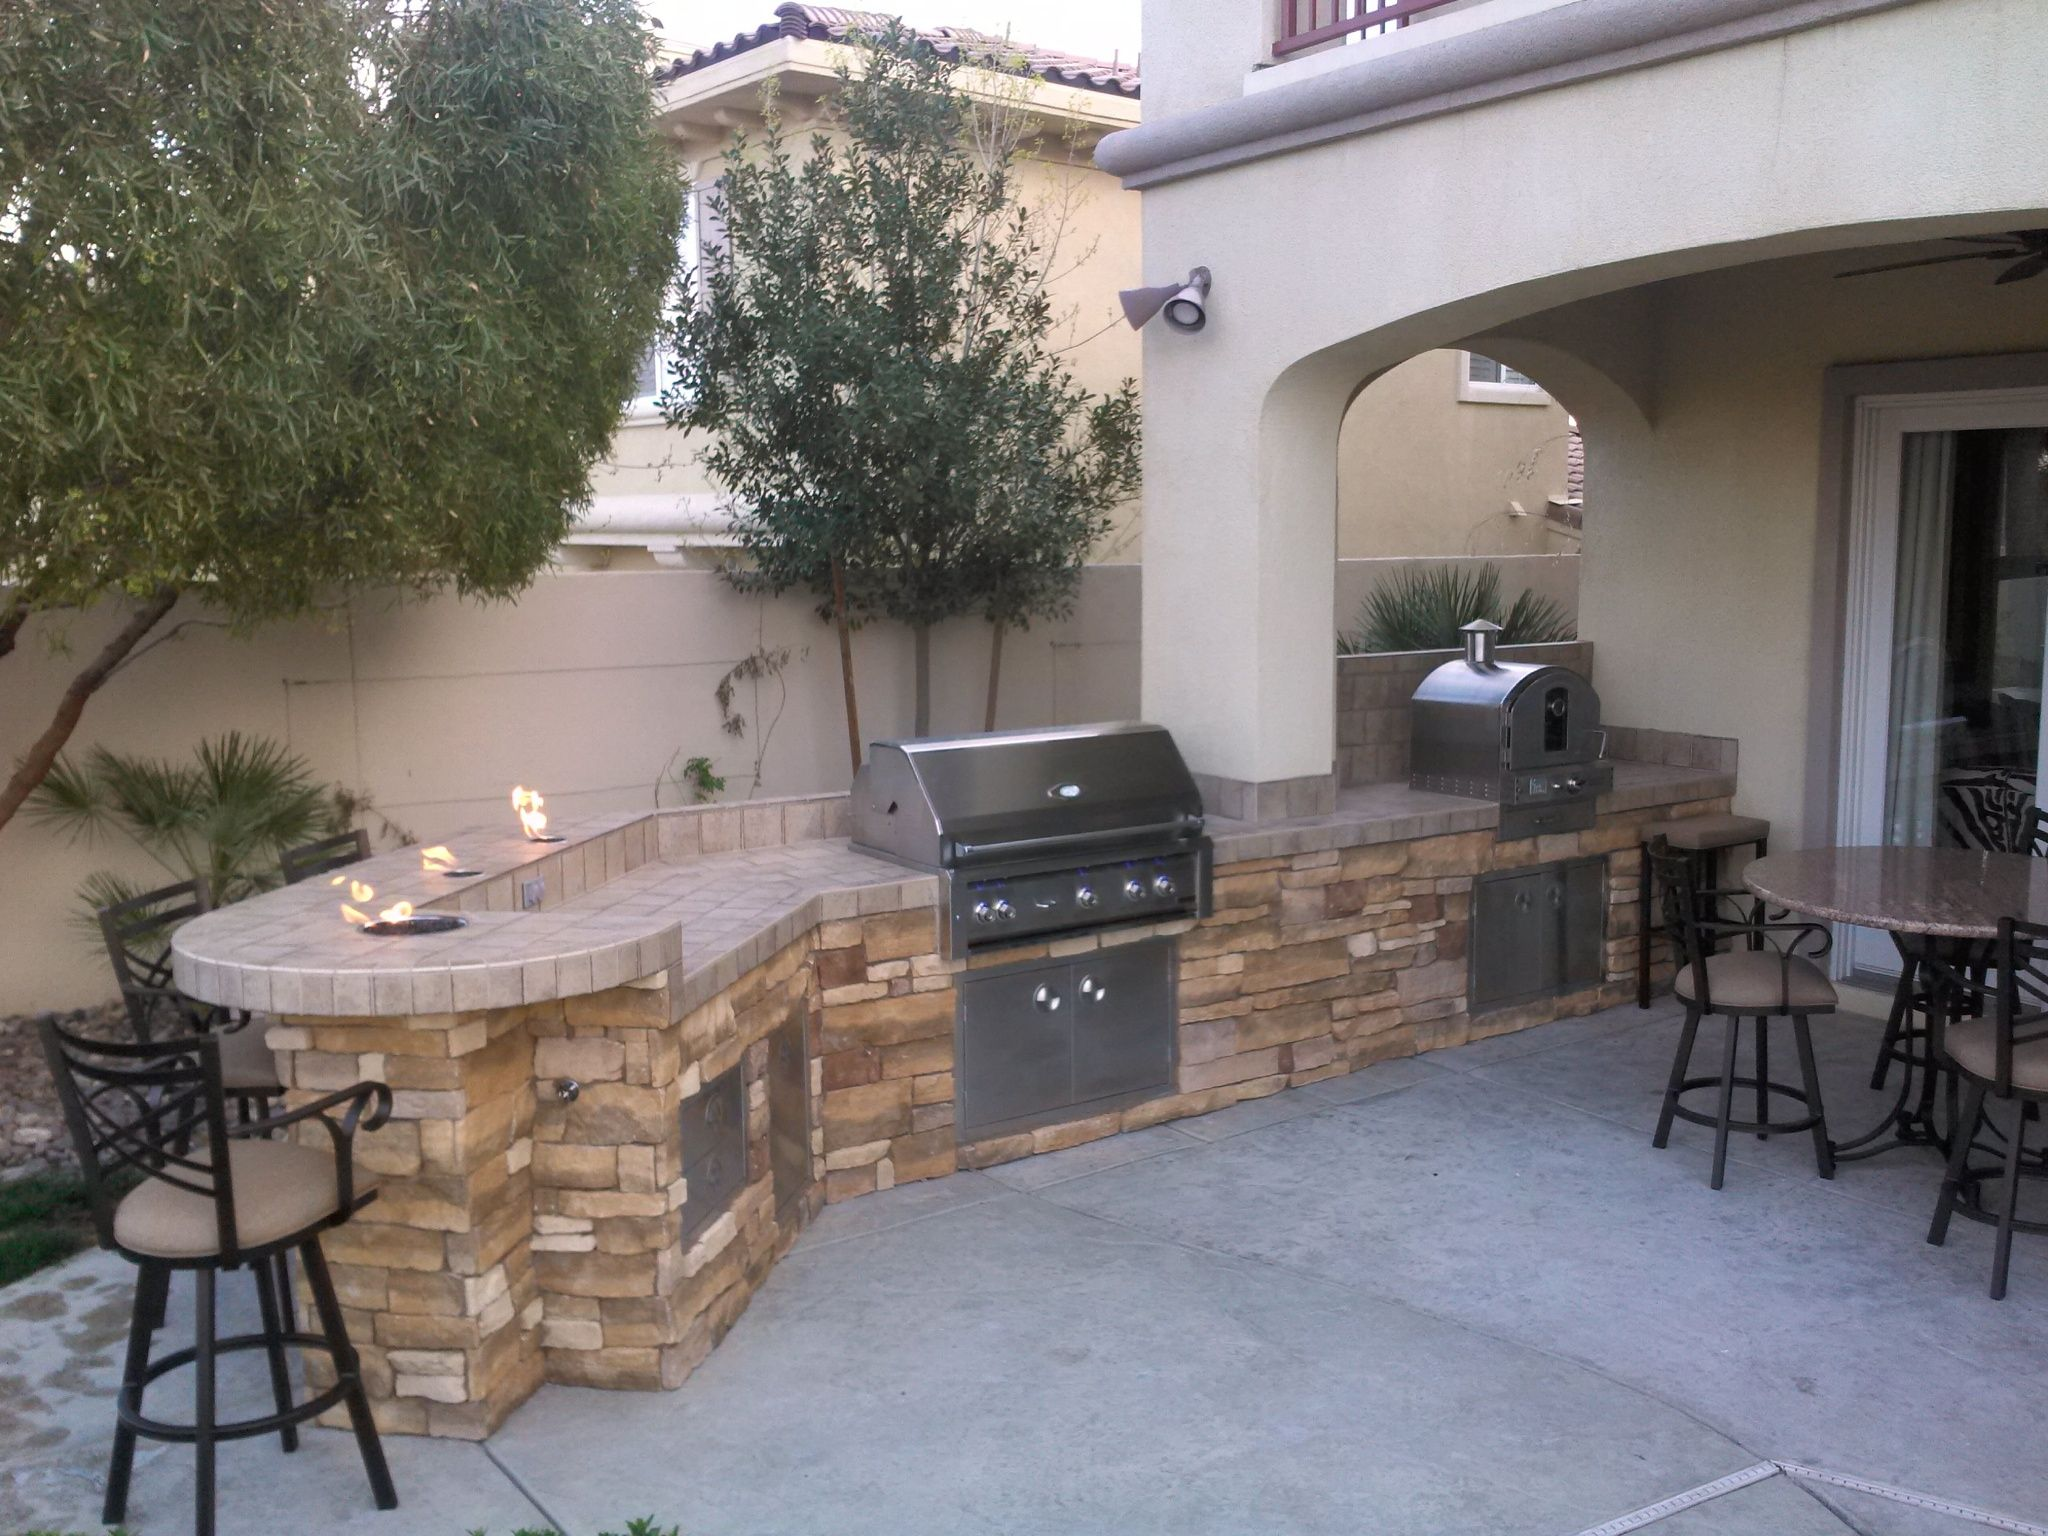 Aire Libre Outdoor Kitchen With Counter Top Firepits And Pizza Oven